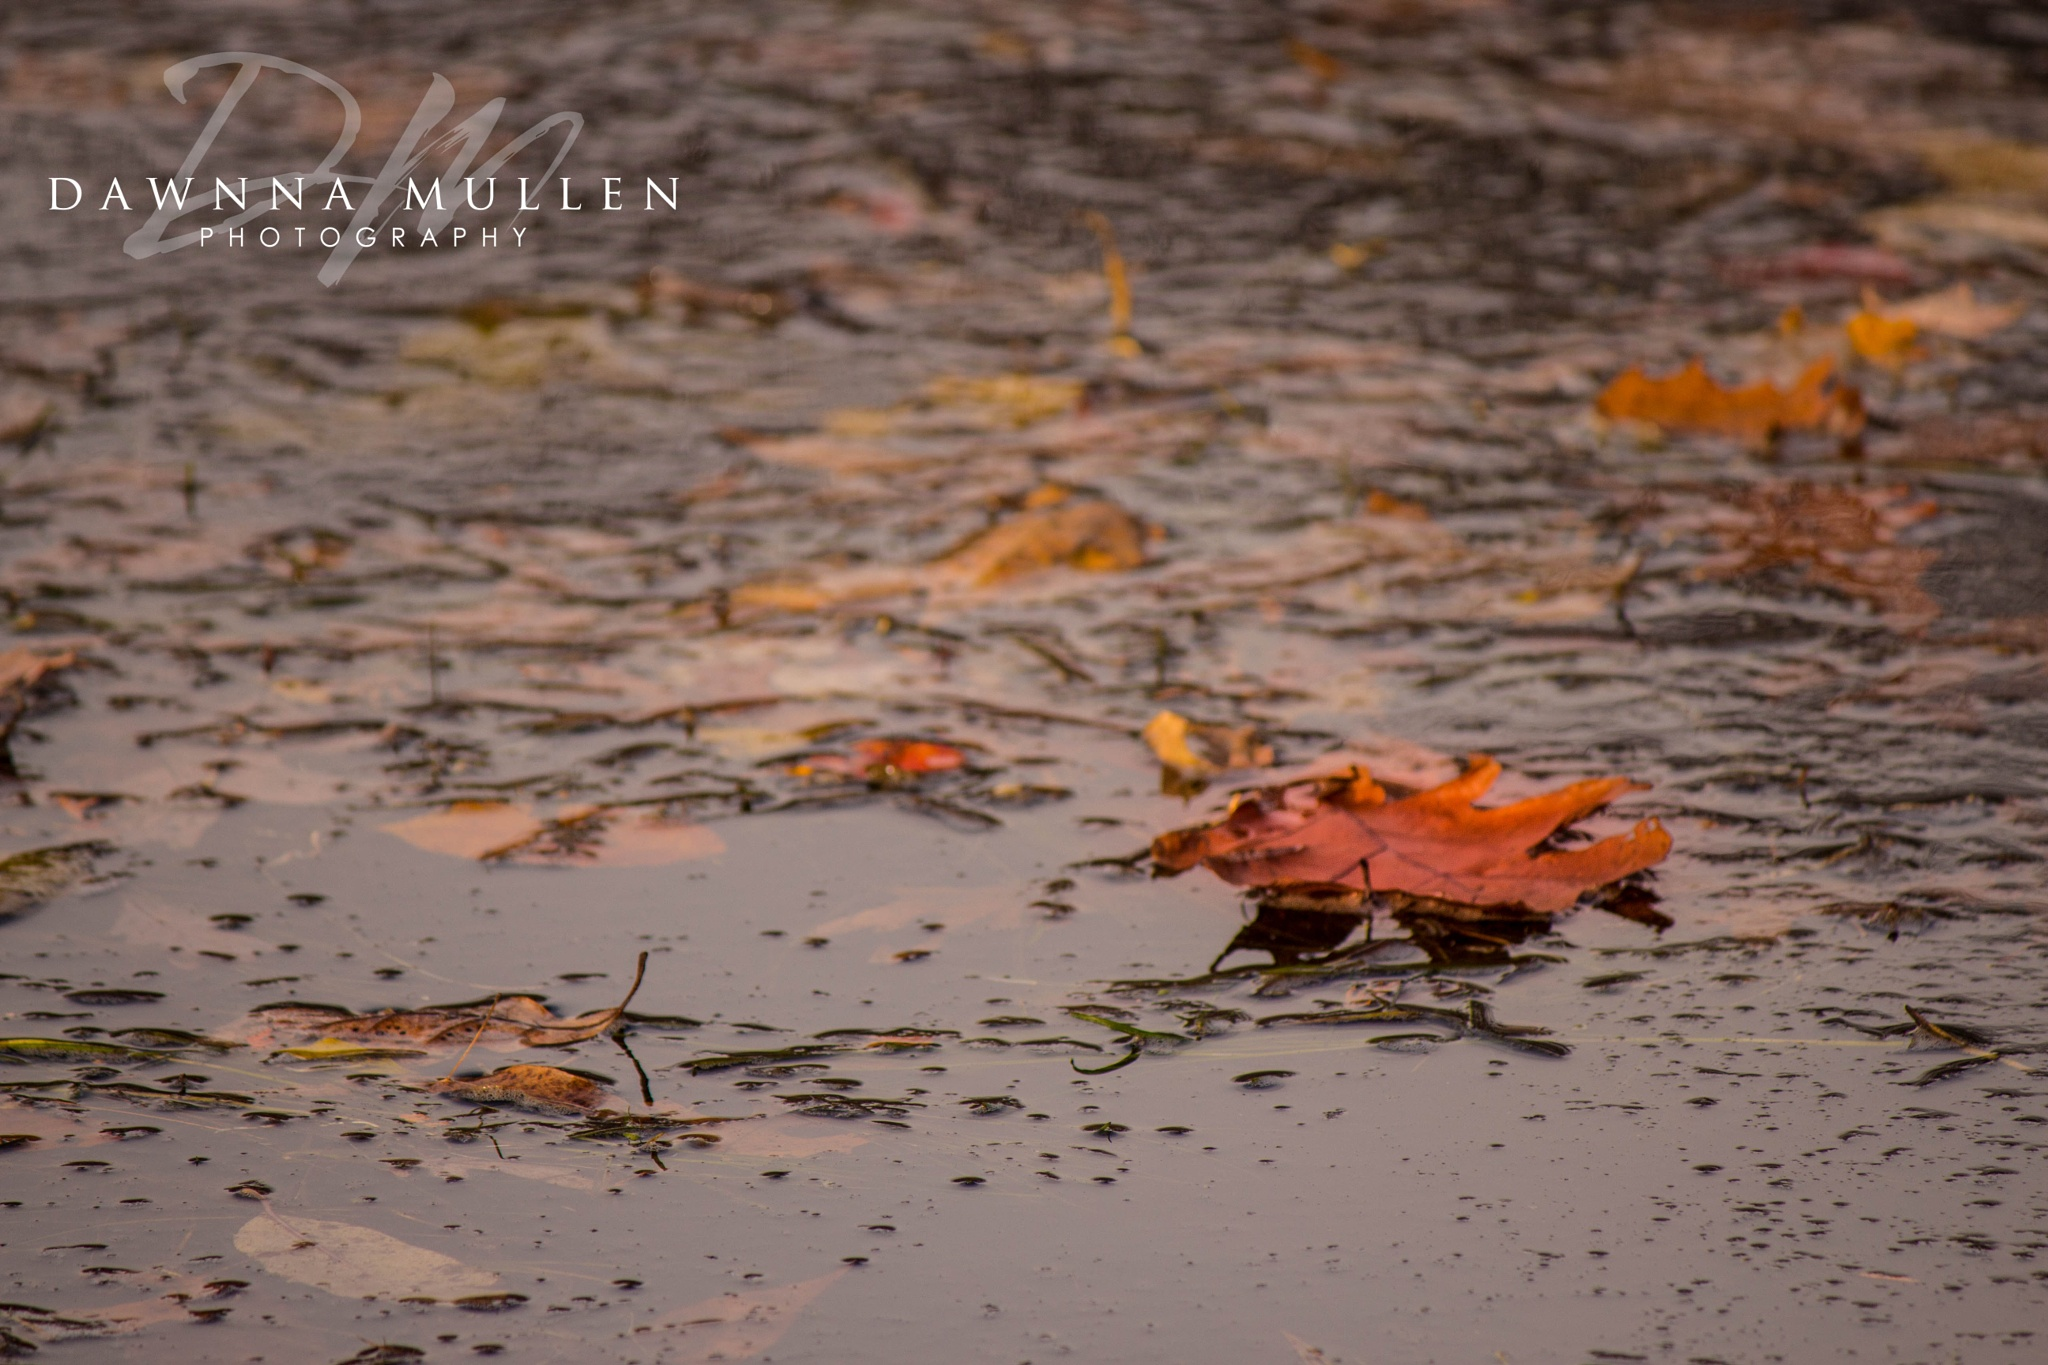 leafs and water by Dawnna Mullen